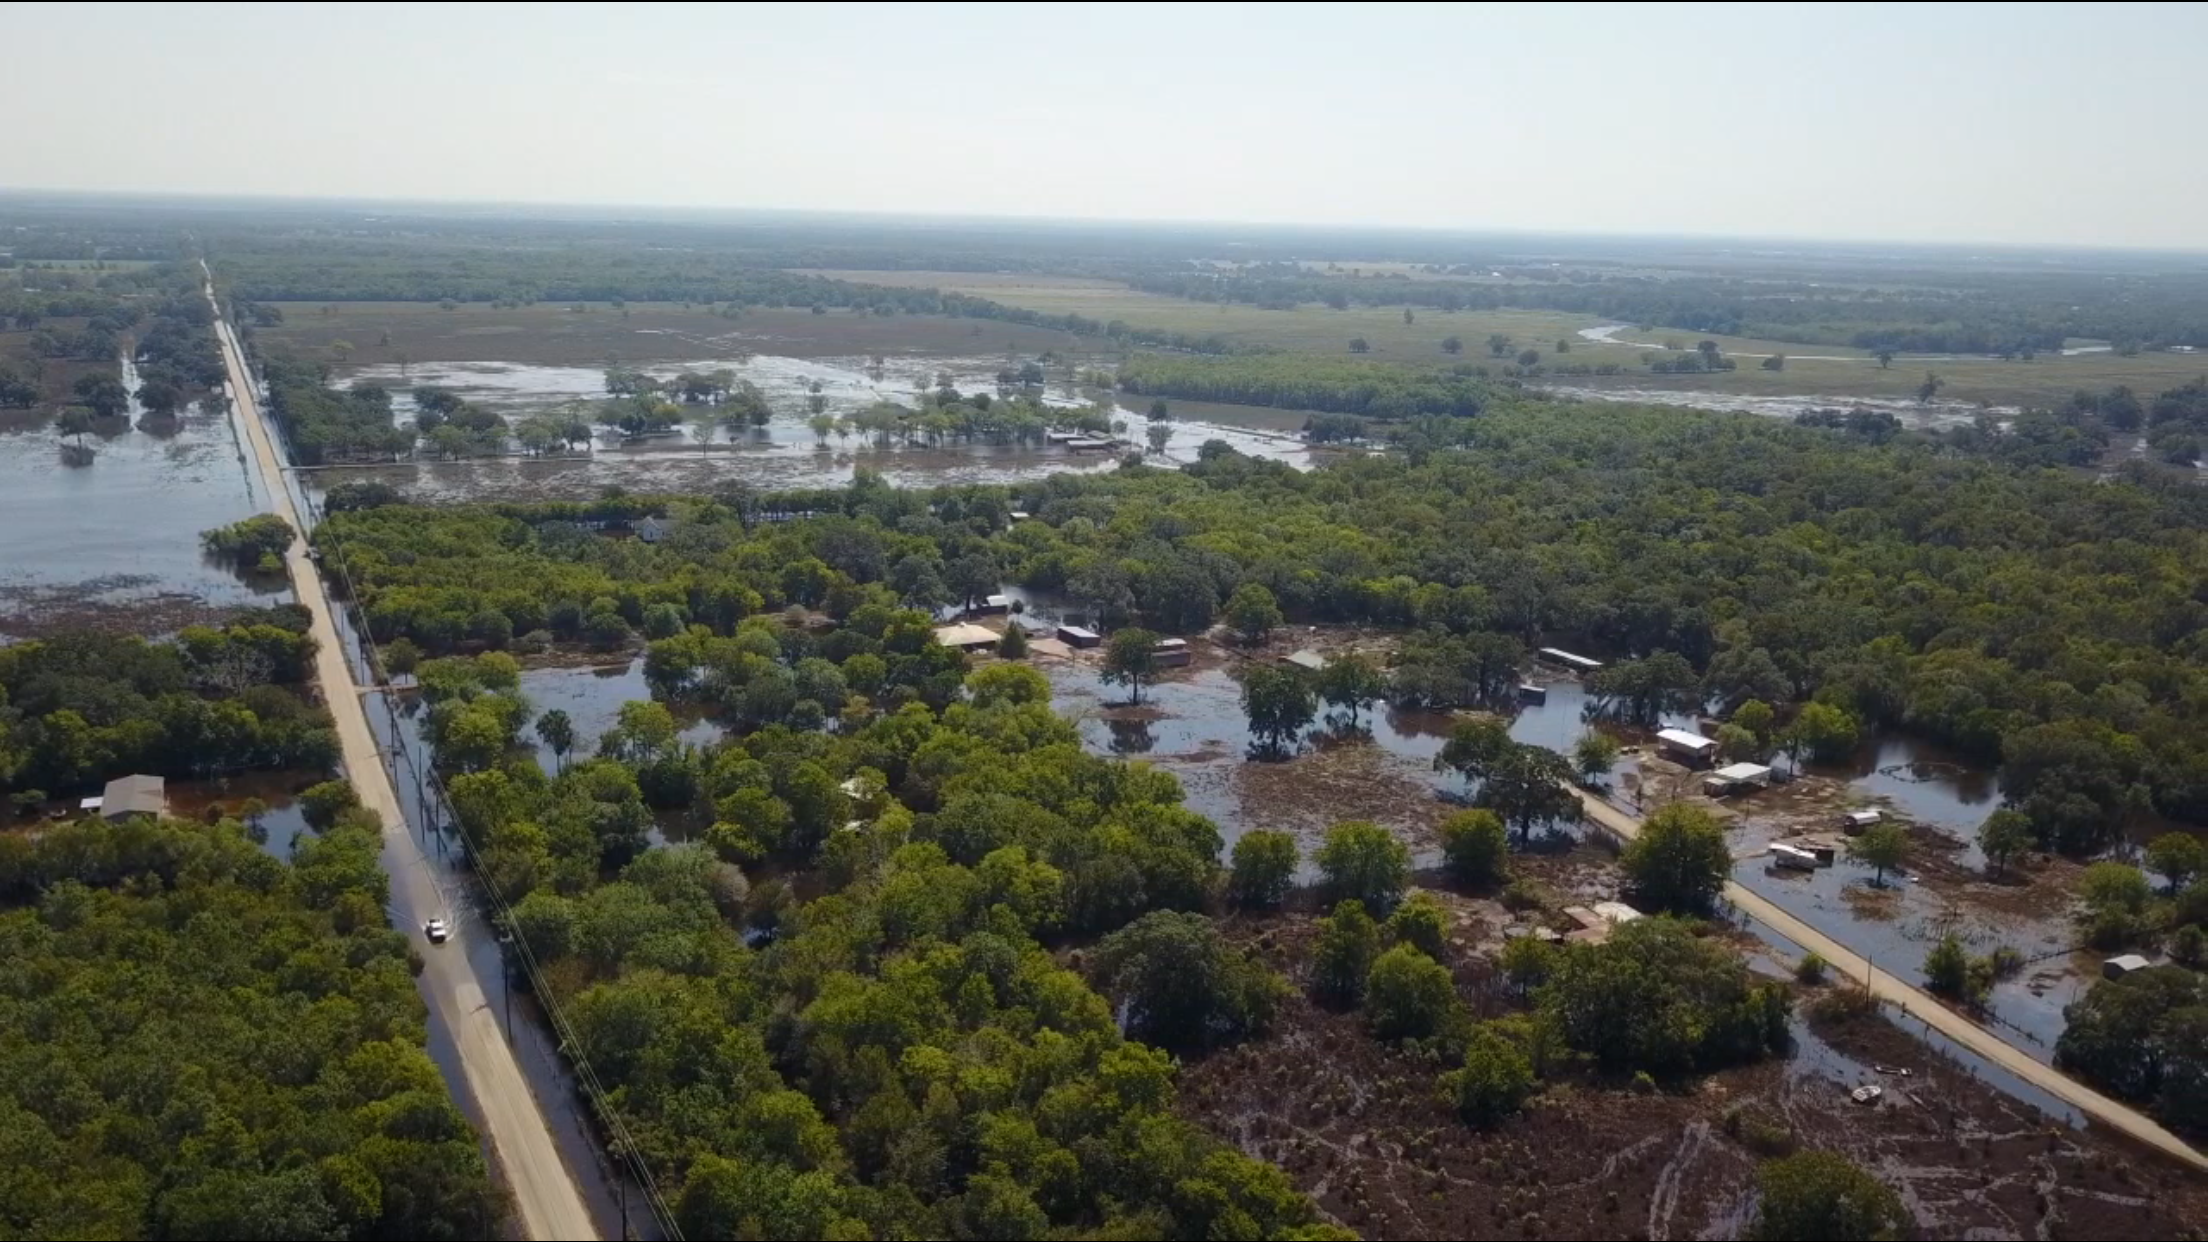 This drone footage was taken in the Angleton area...two weeks after Harvey and the flood waters were barely starting to recede.